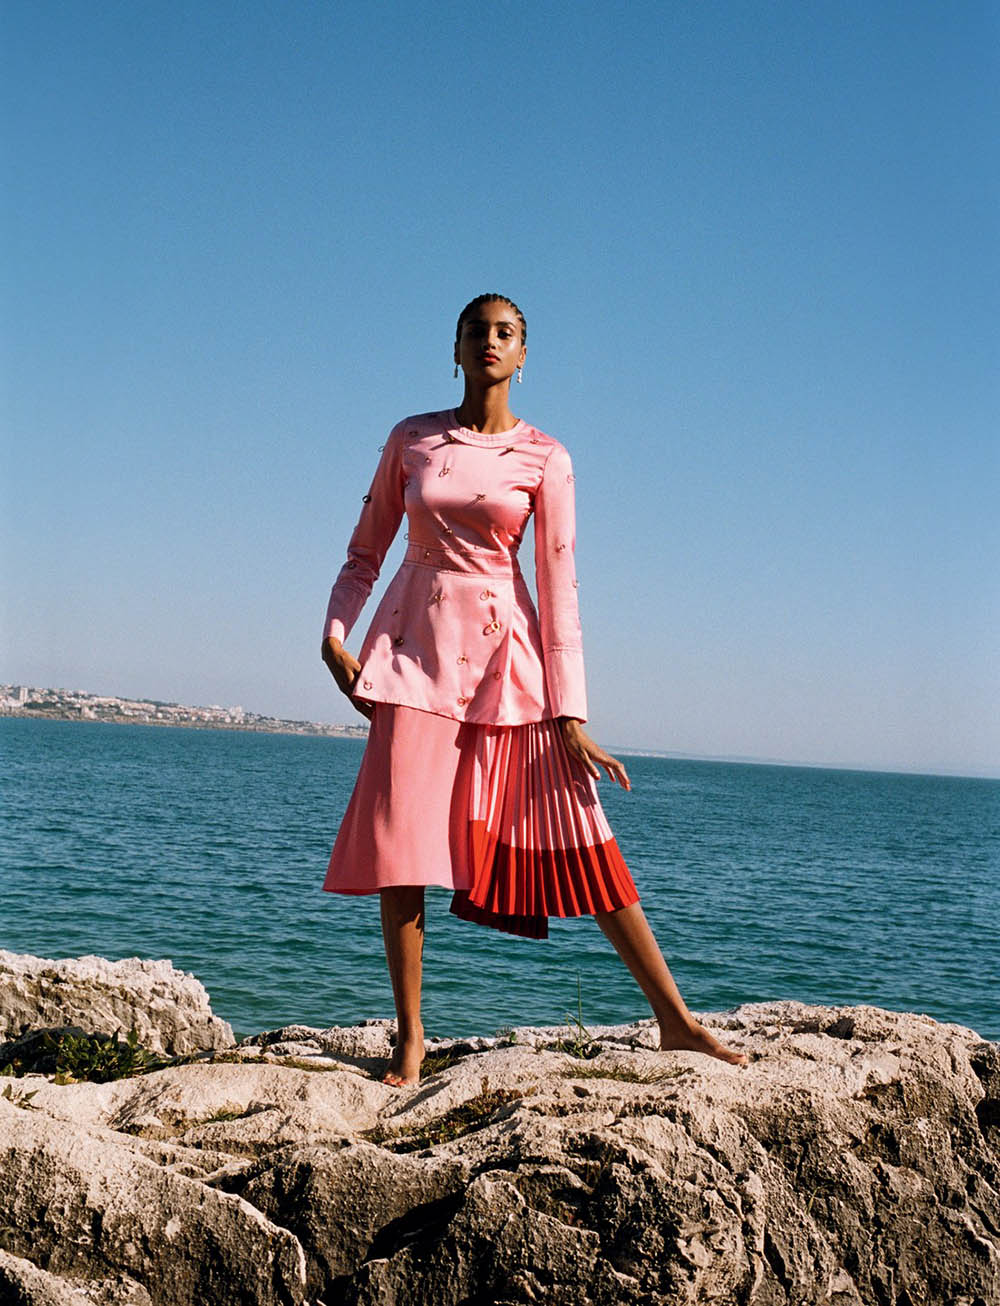 Imaan Hammam by Angelo Pennetta for British Vogue May 2019